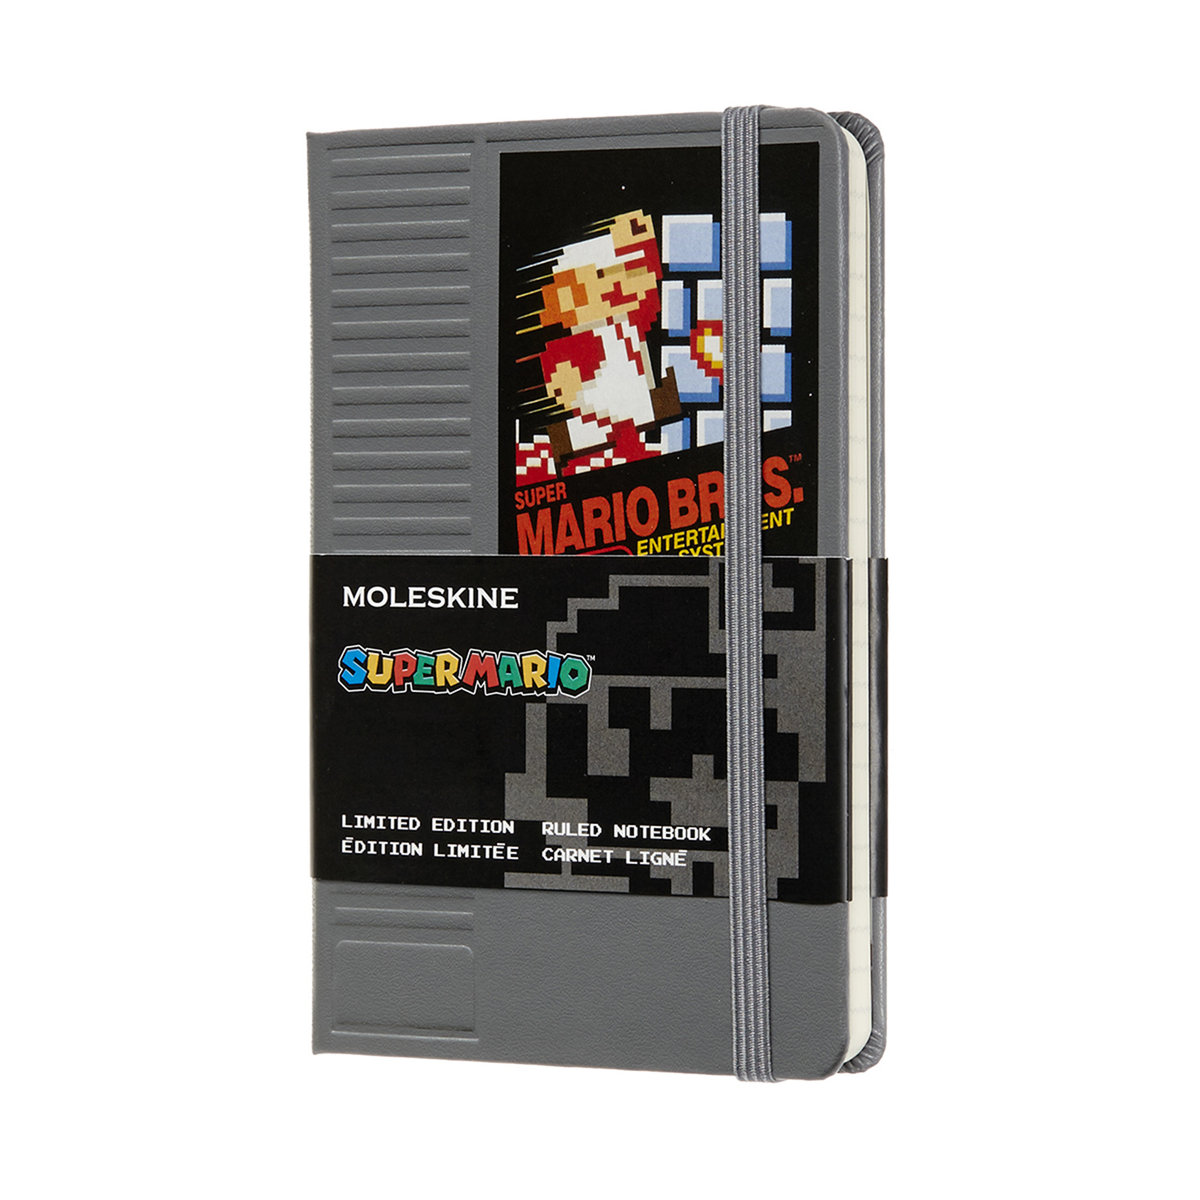 Limited Edition Notebook Super Mario Pocket Ruled NES Cartridge